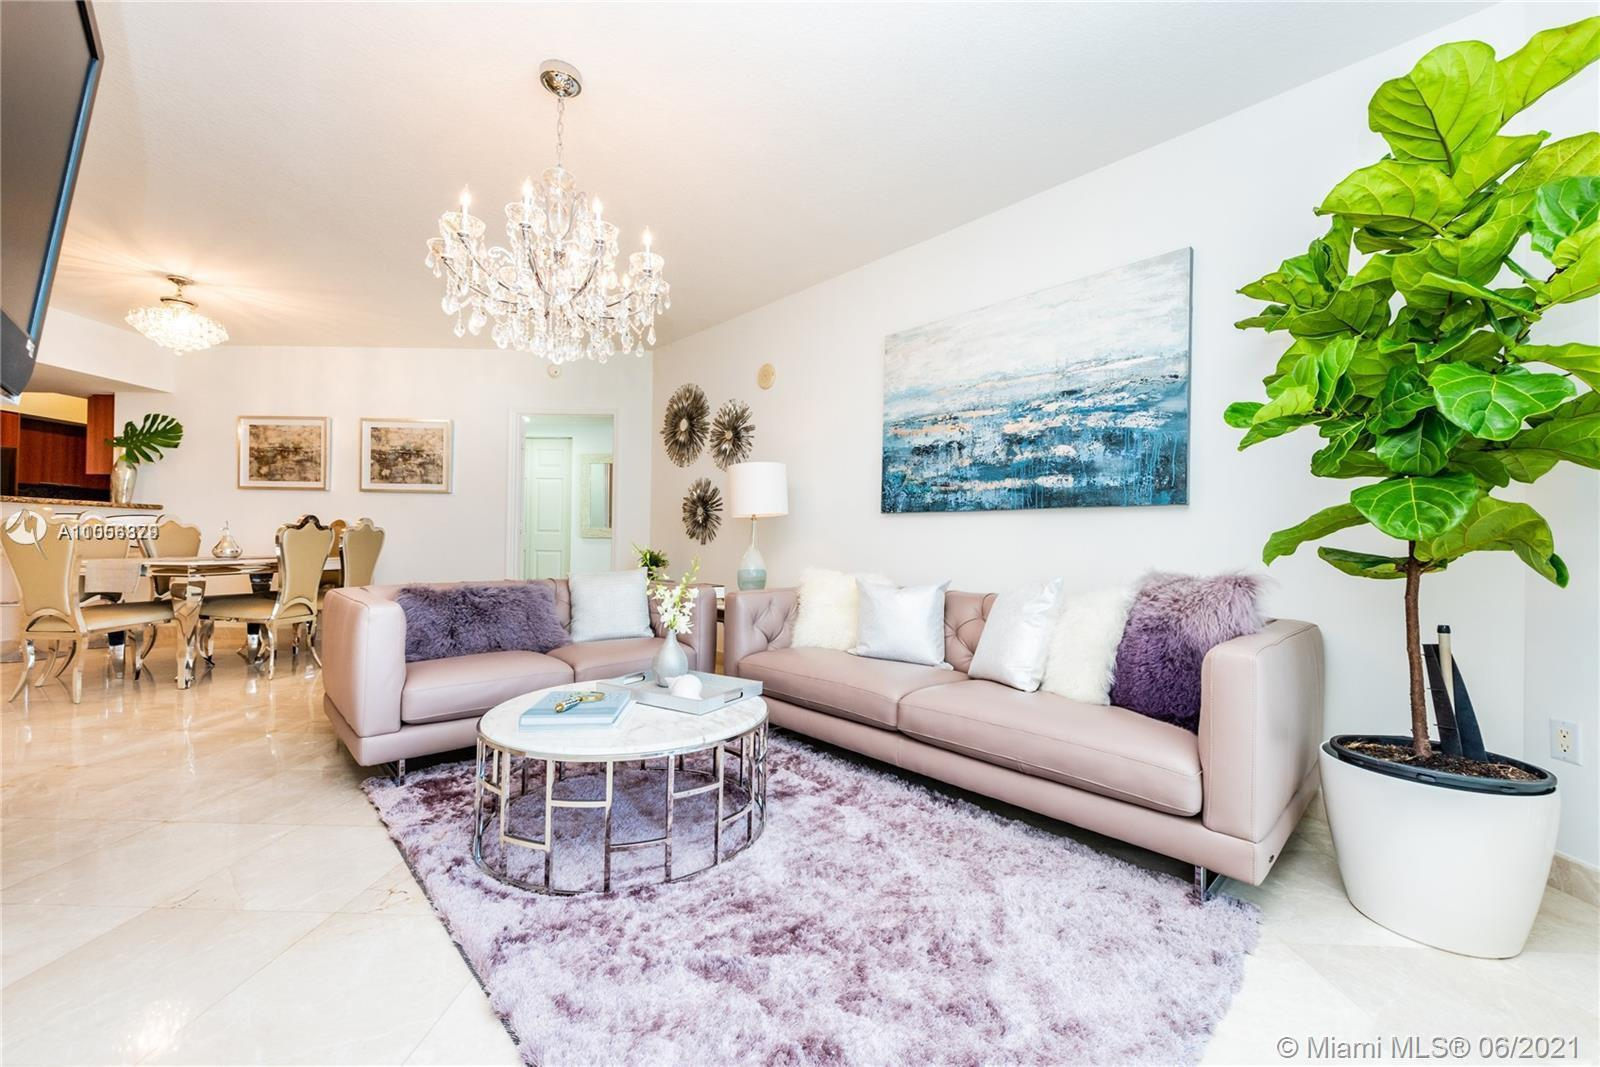 Magnificent unit with Ocean View. 2 Bedrooms + Den (Converted to a 3rd Bedroom), 2 Full Bathrooms, 1